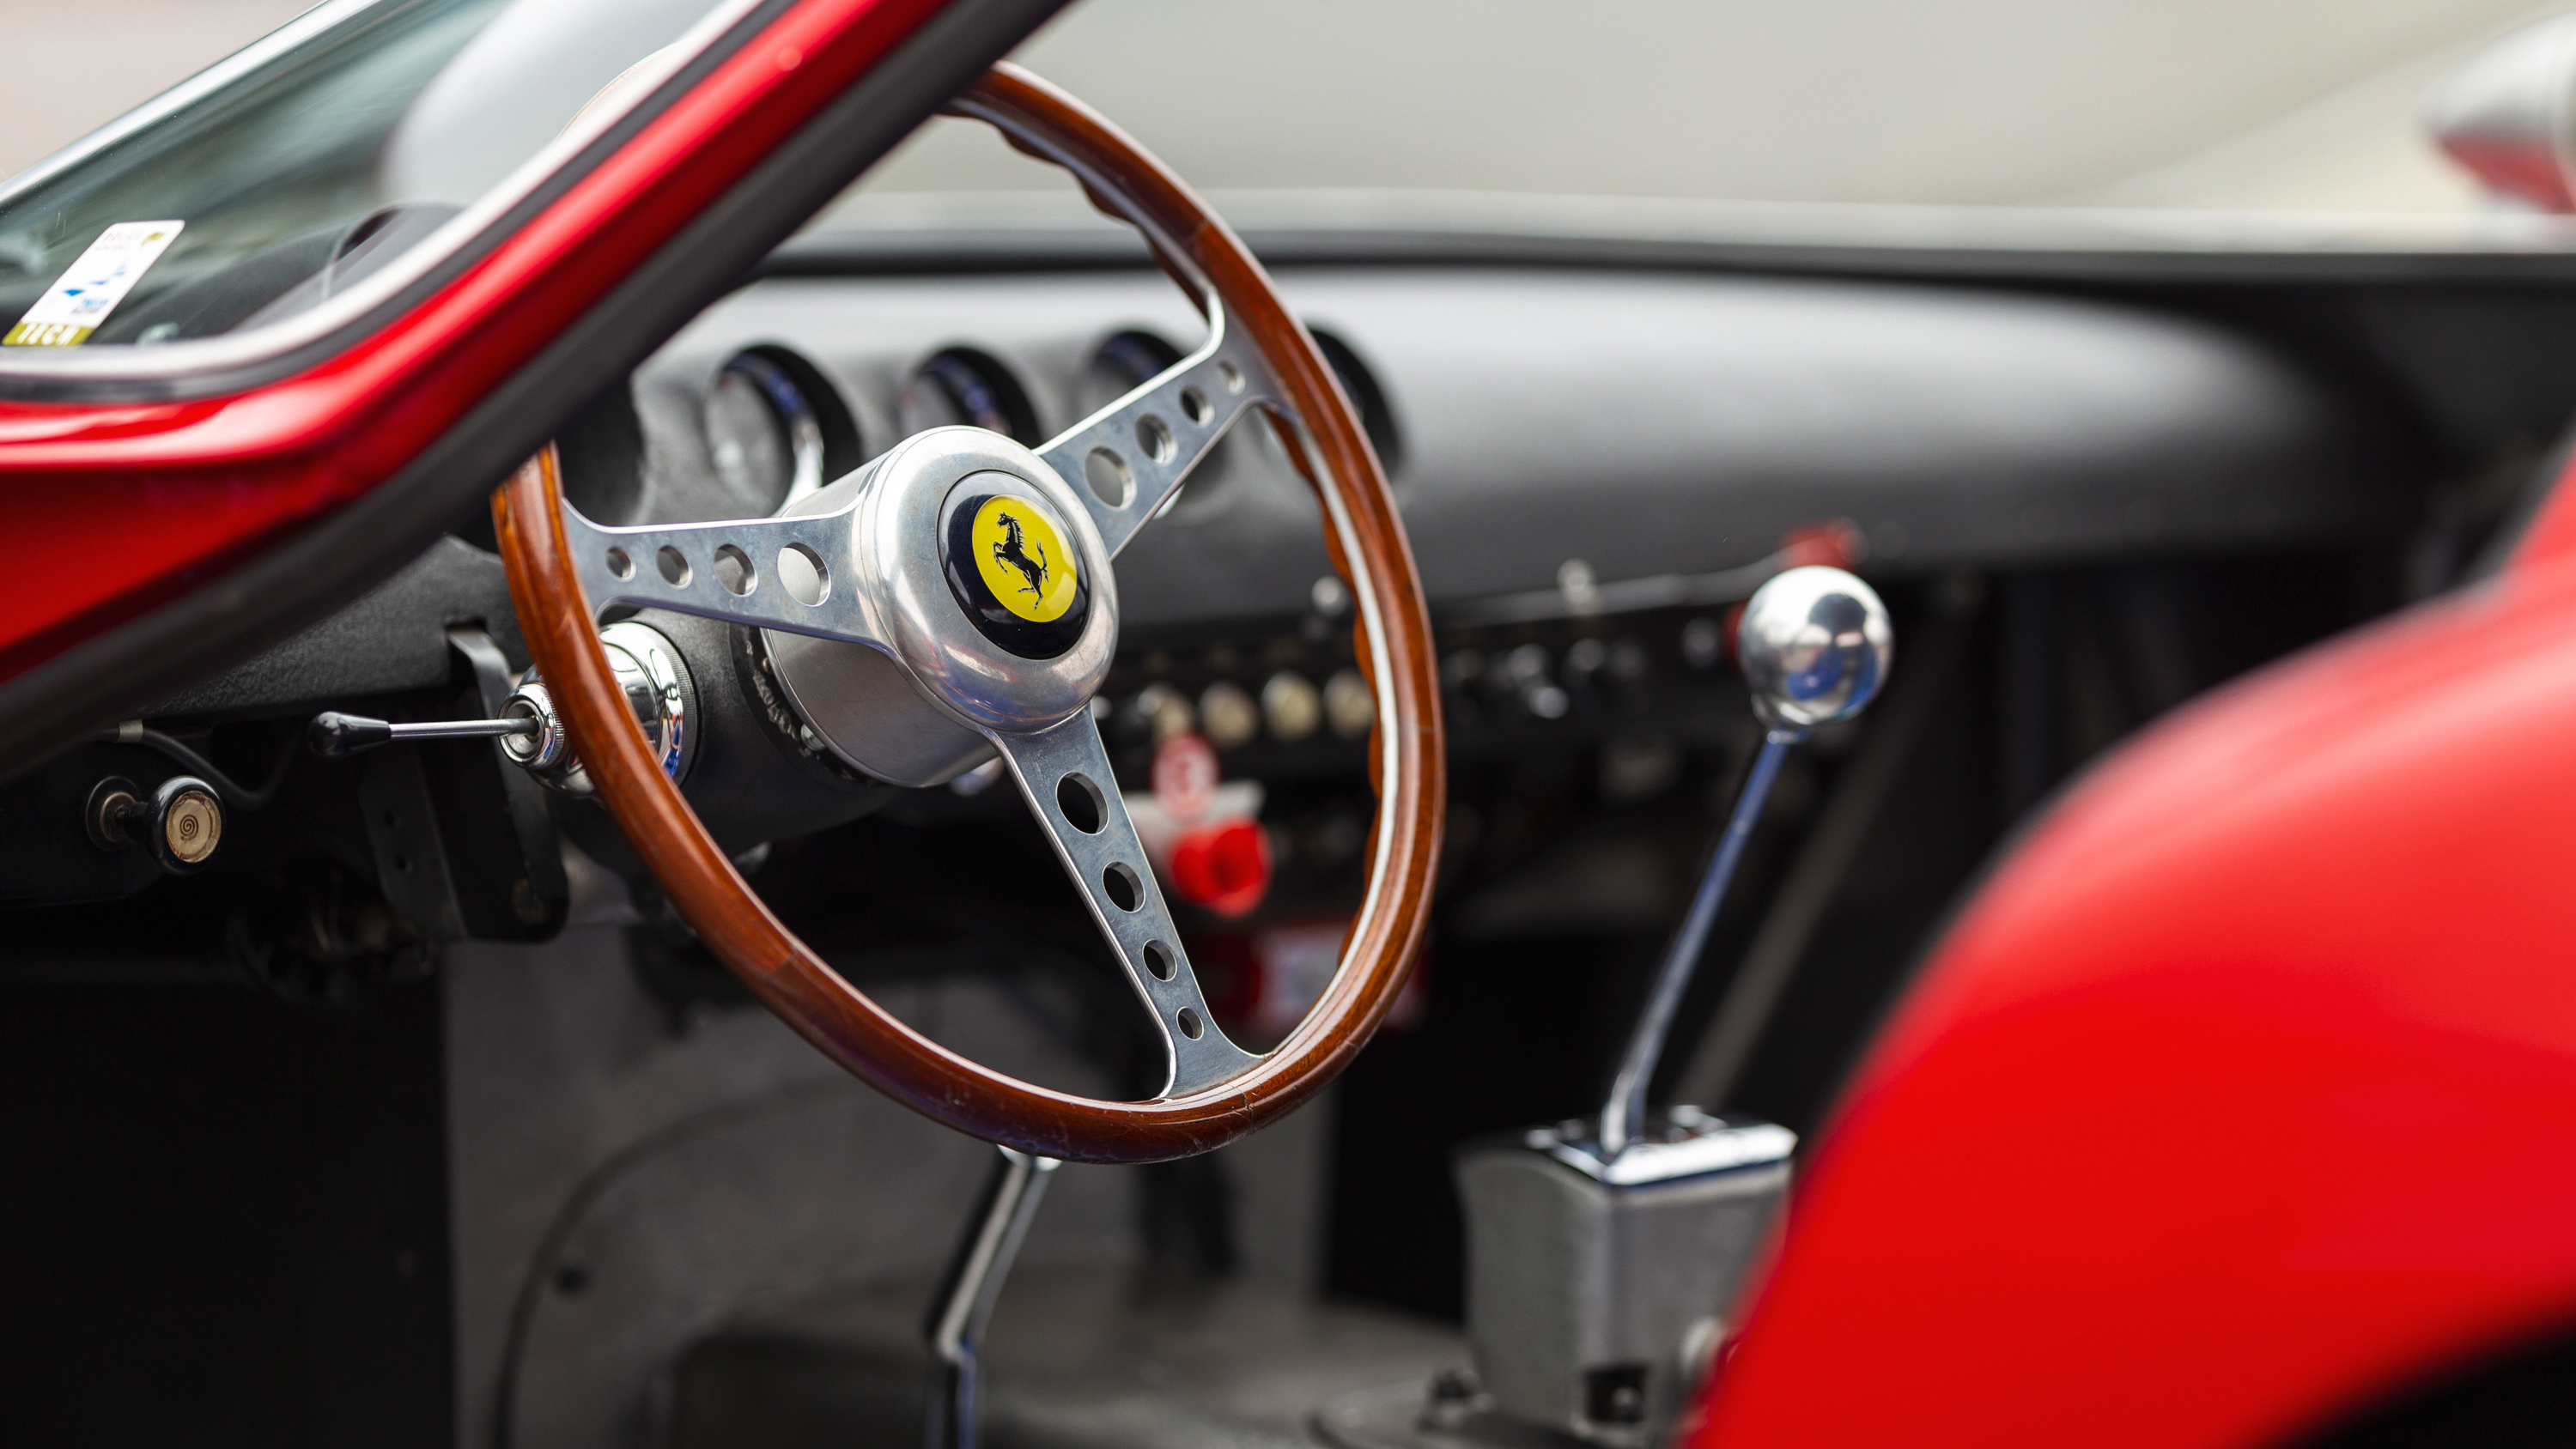 You can buy this Ferrari 250 GTO if you have £35,000,000